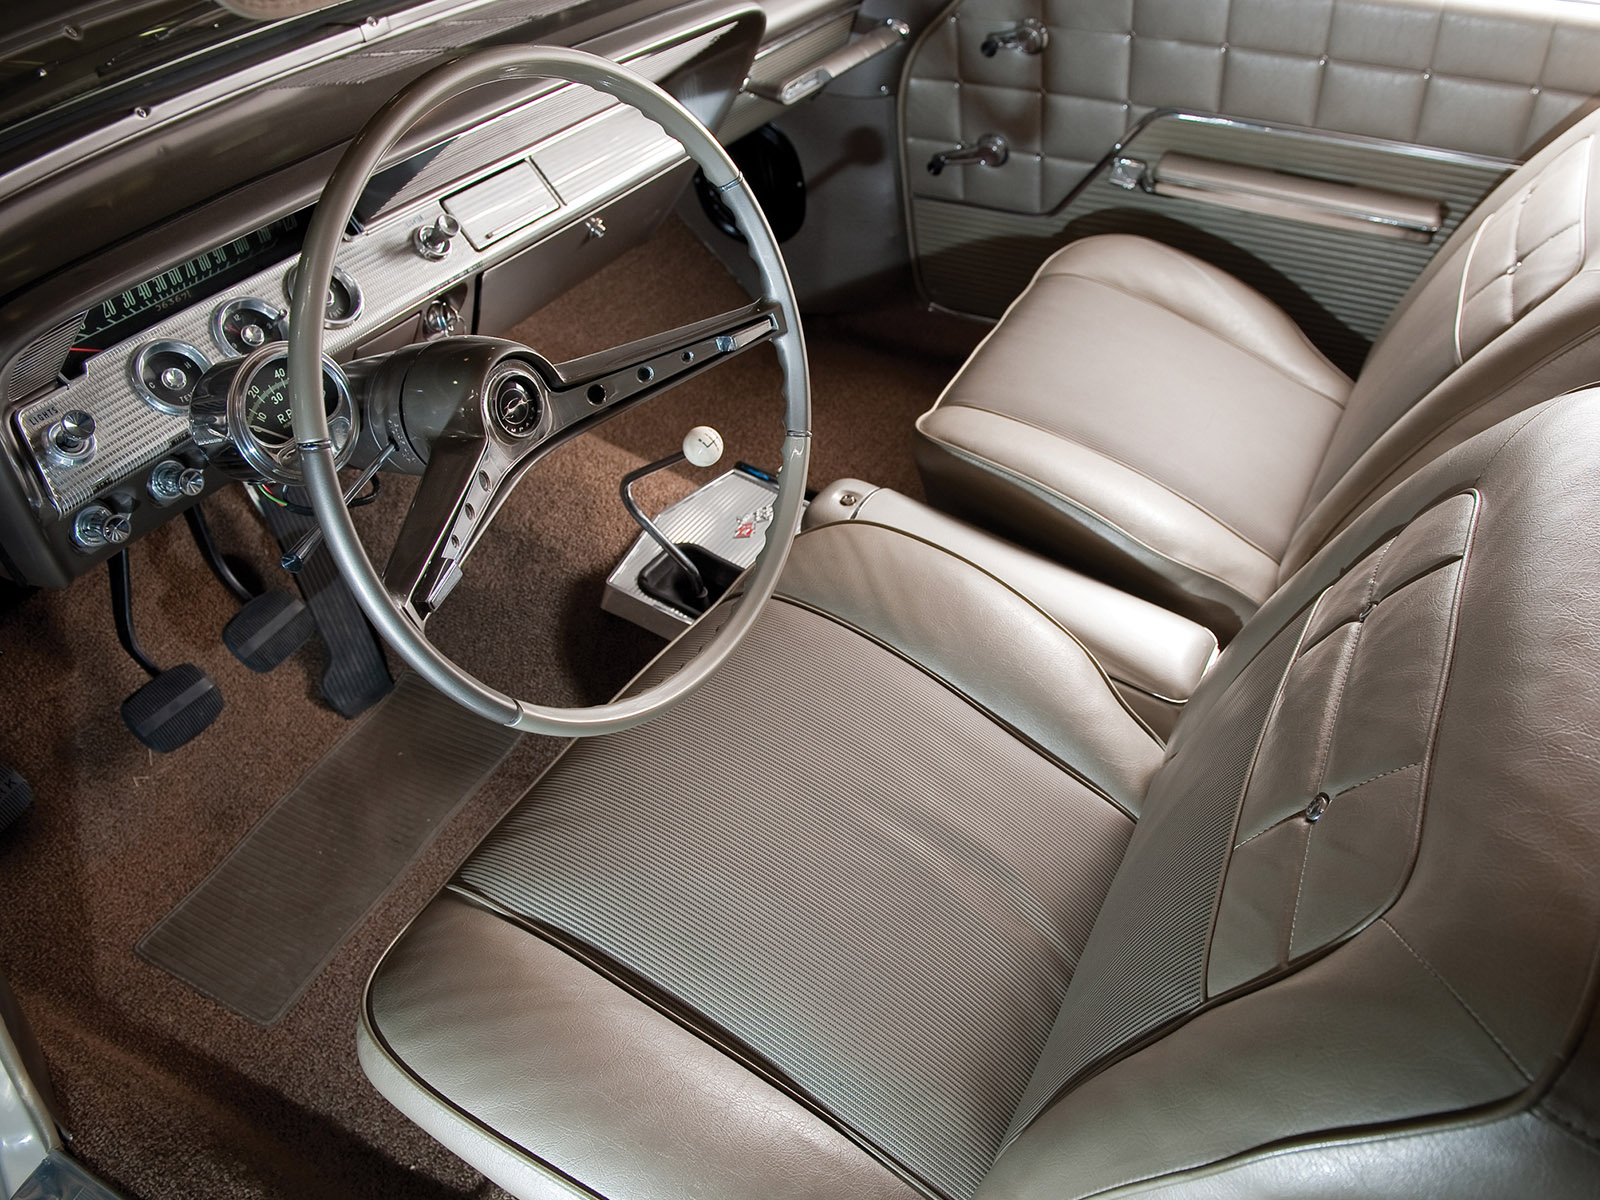 1962 Chevrolet Impala S S 409 Lightweight Coupe Classic Muscle Interior Wallpaper 1600x1200